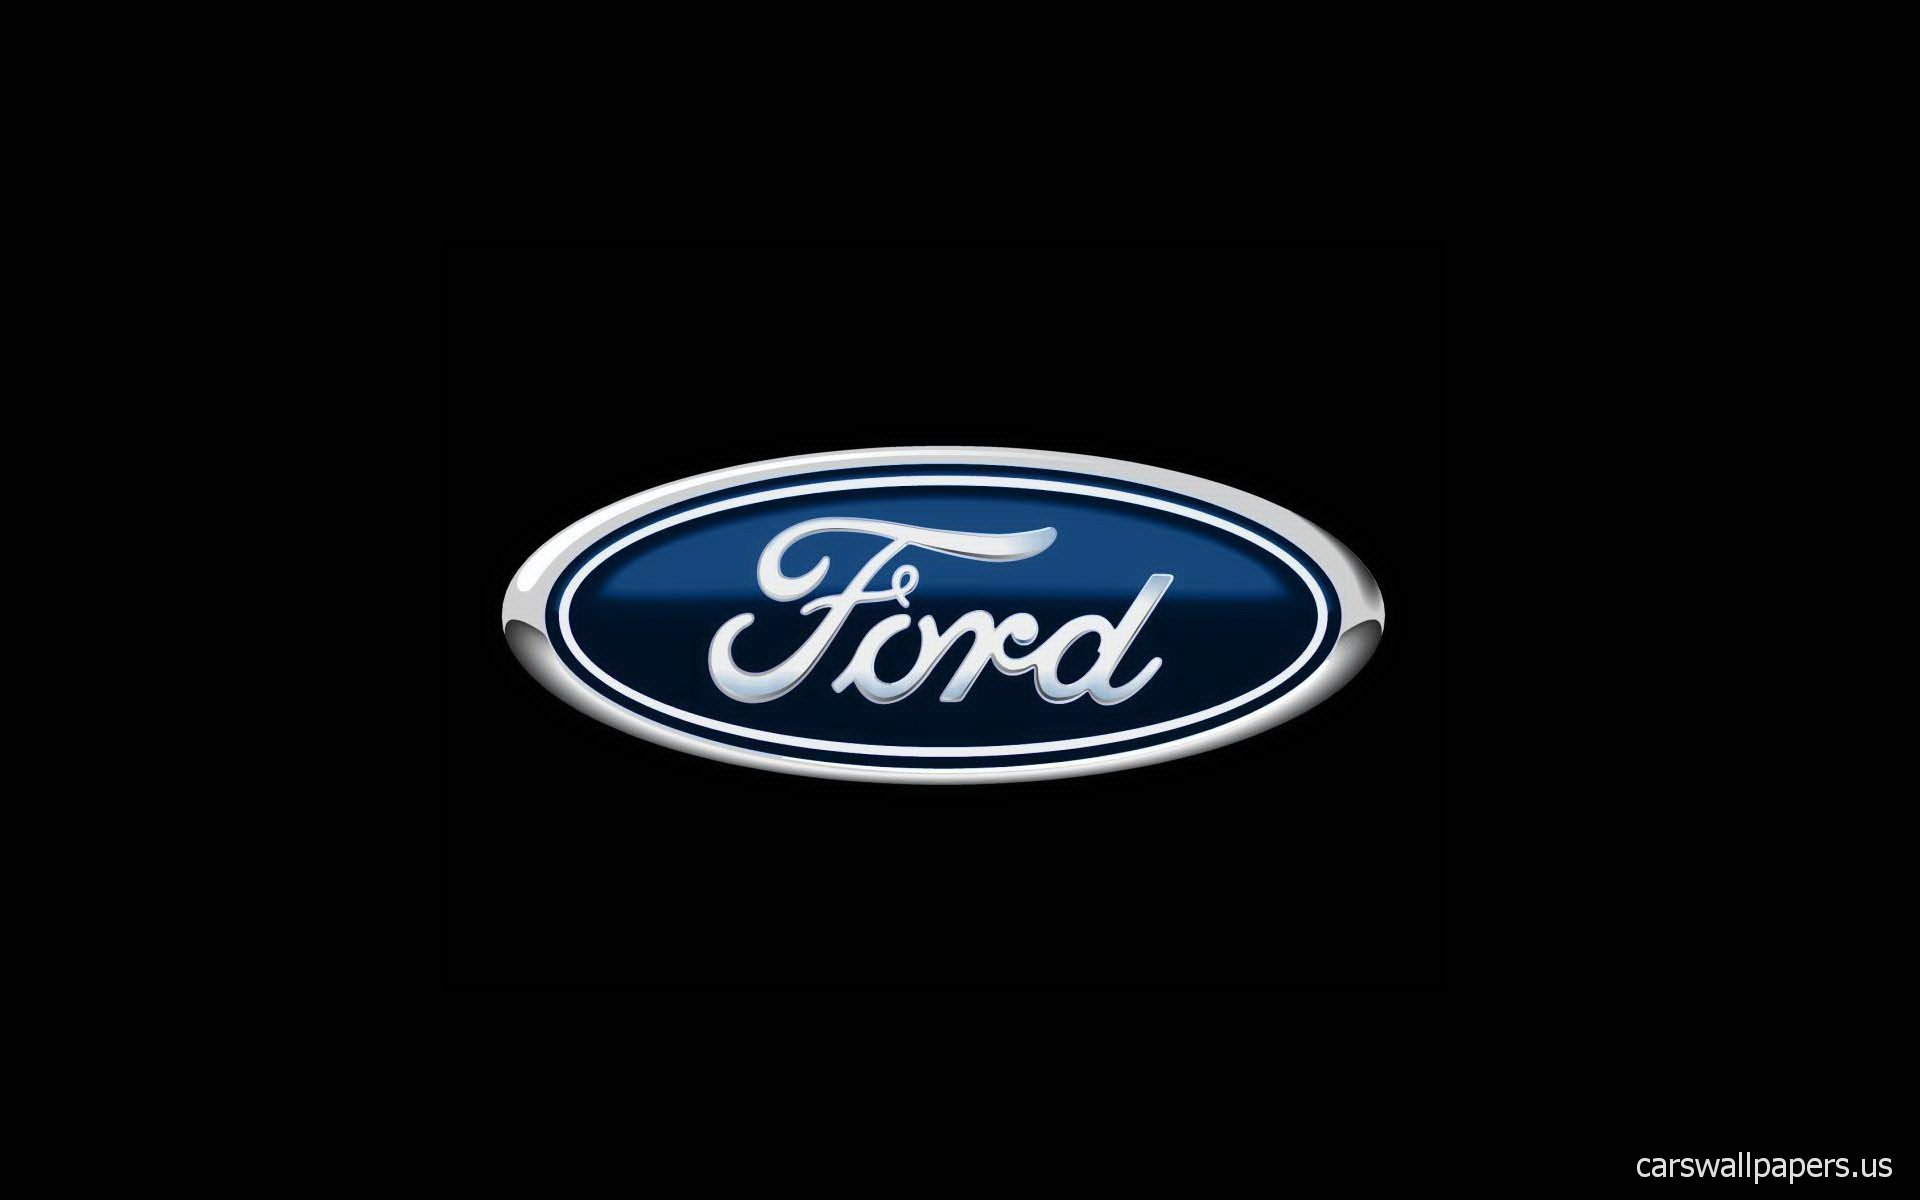 Ford logo wallpapers 1920x1200